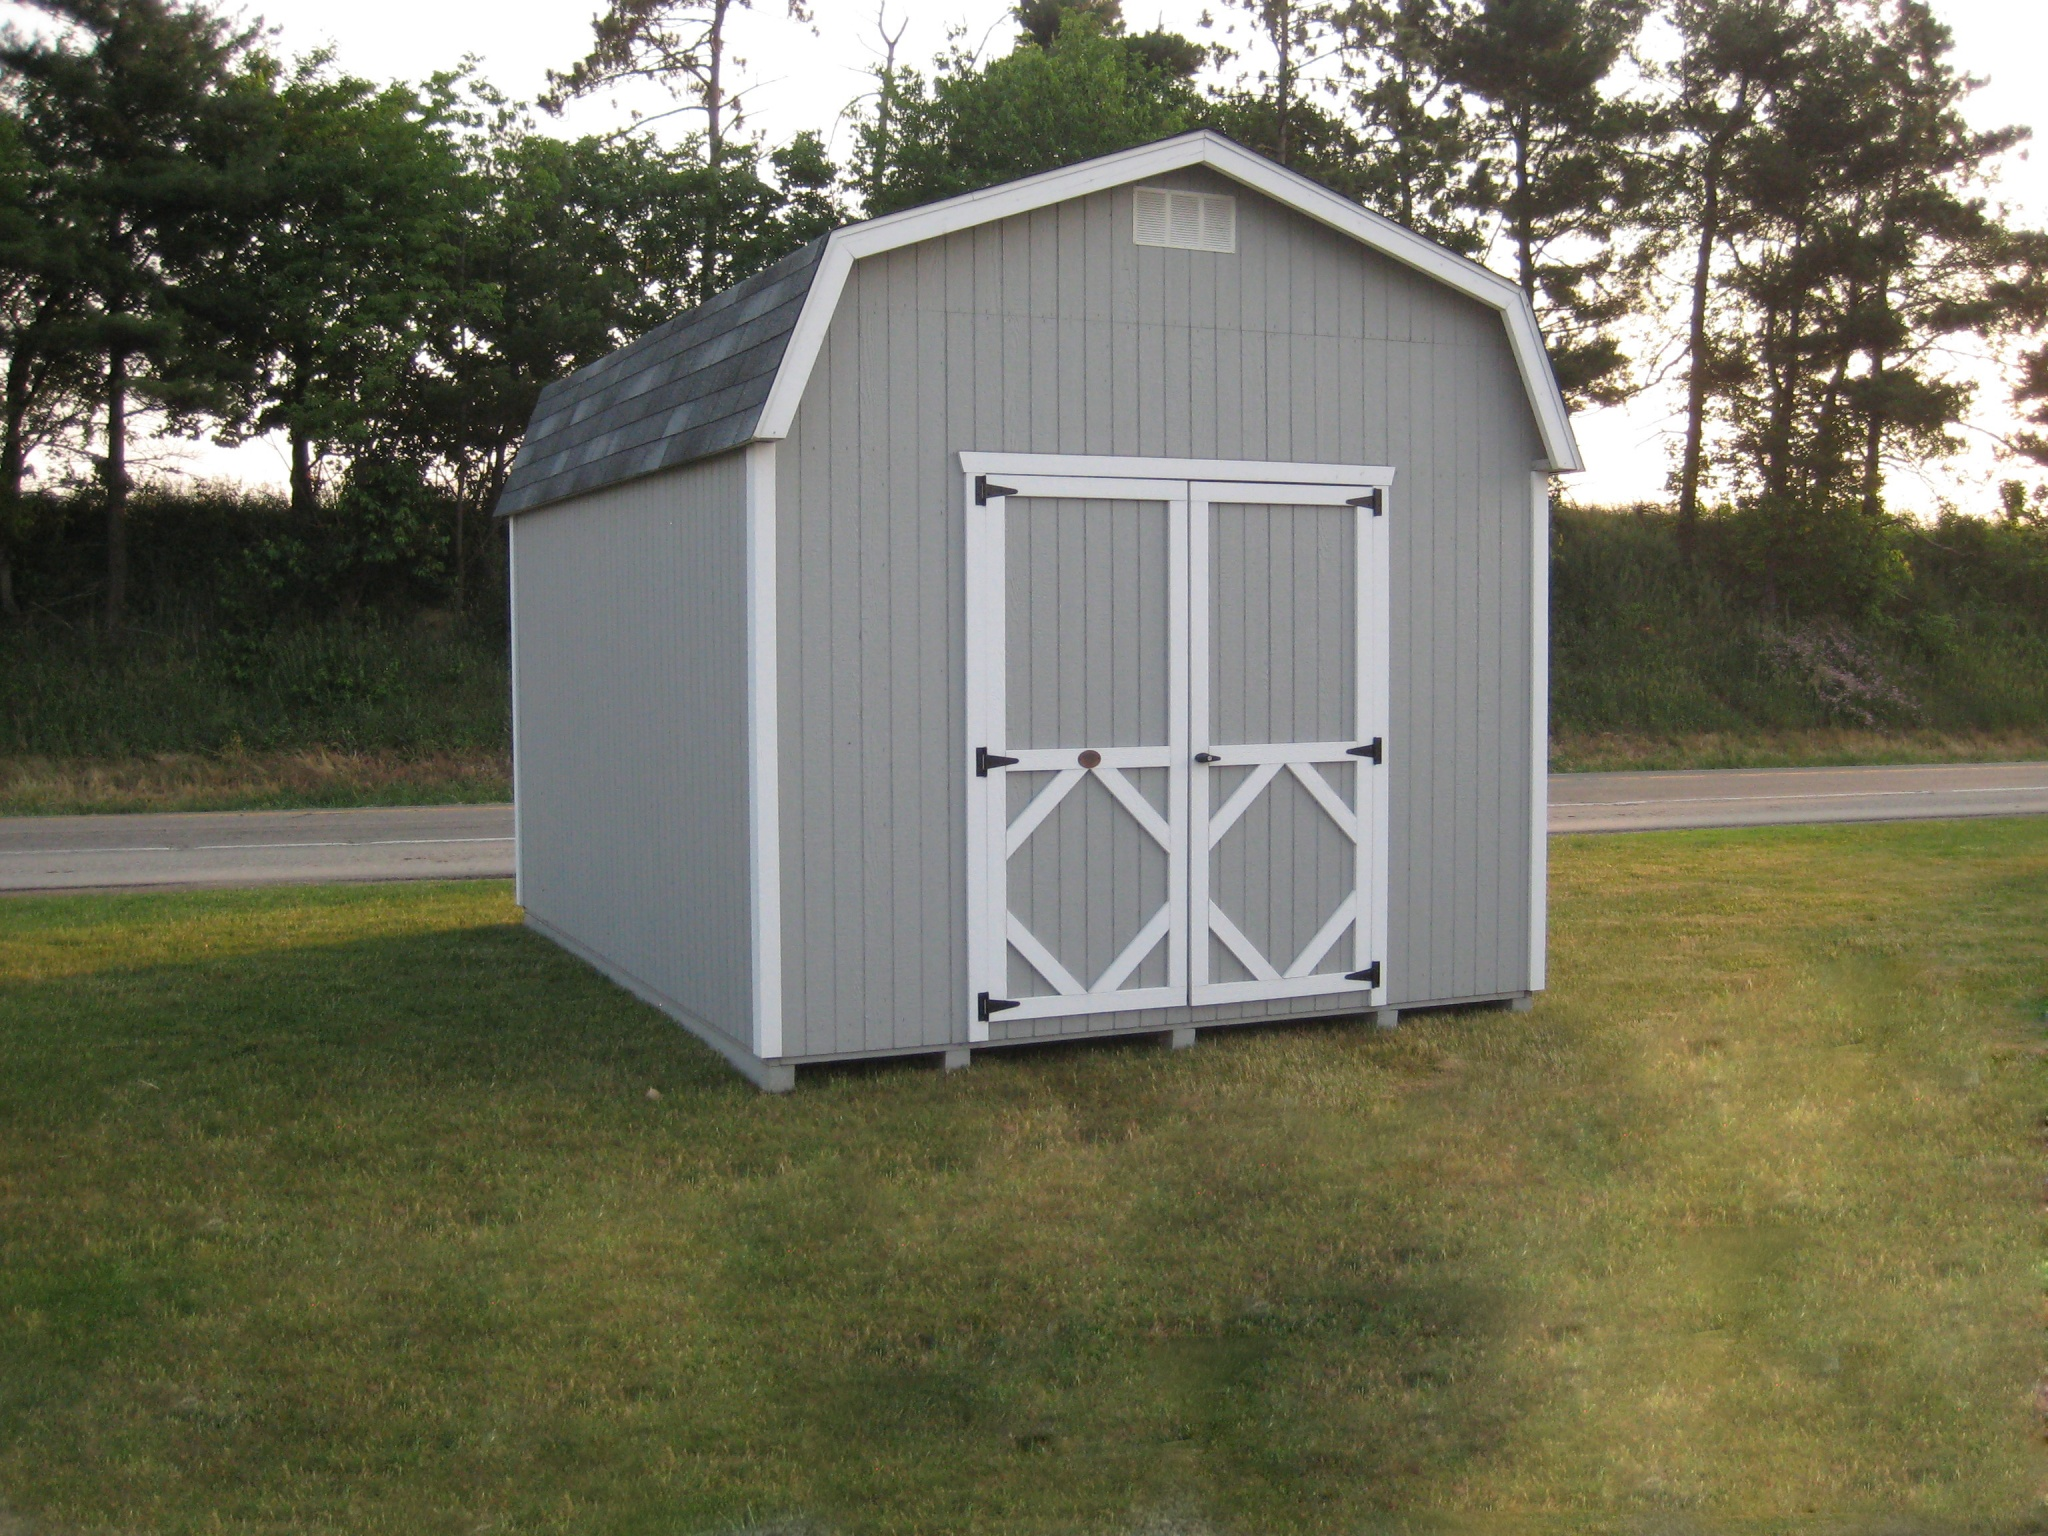 Classic Barn w/ 6' Sidewall storage shed kit